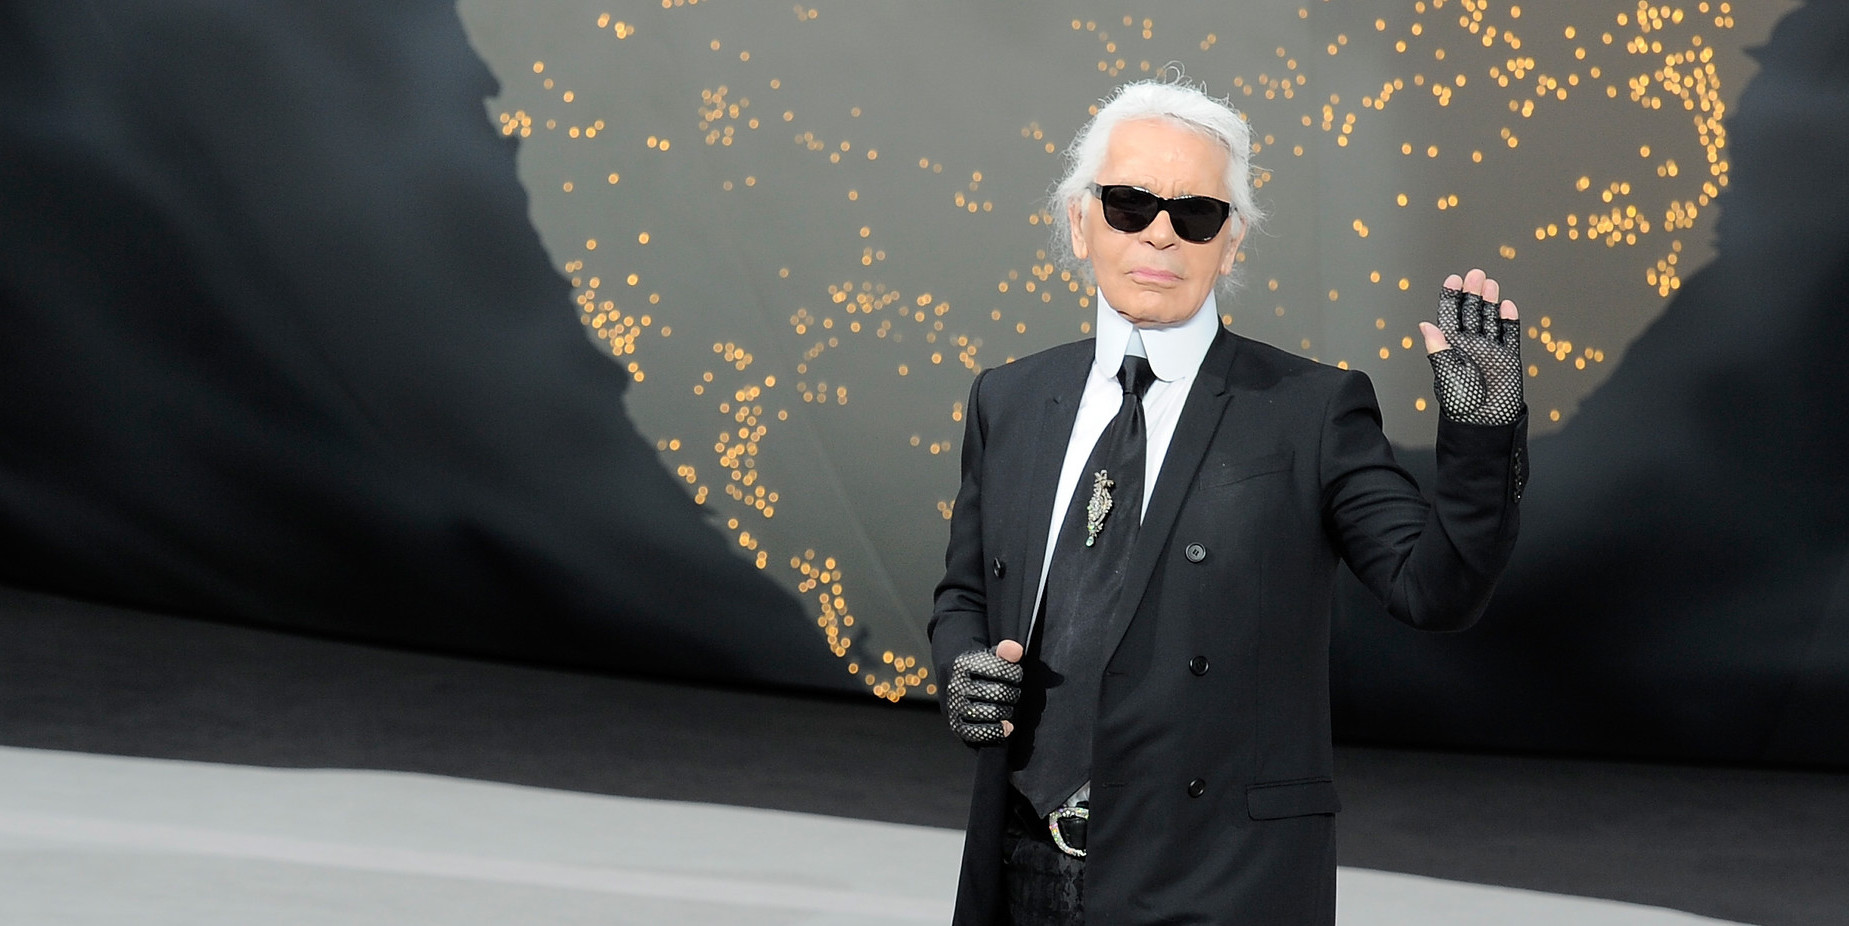 Karl Lagerfeld in a dior suit